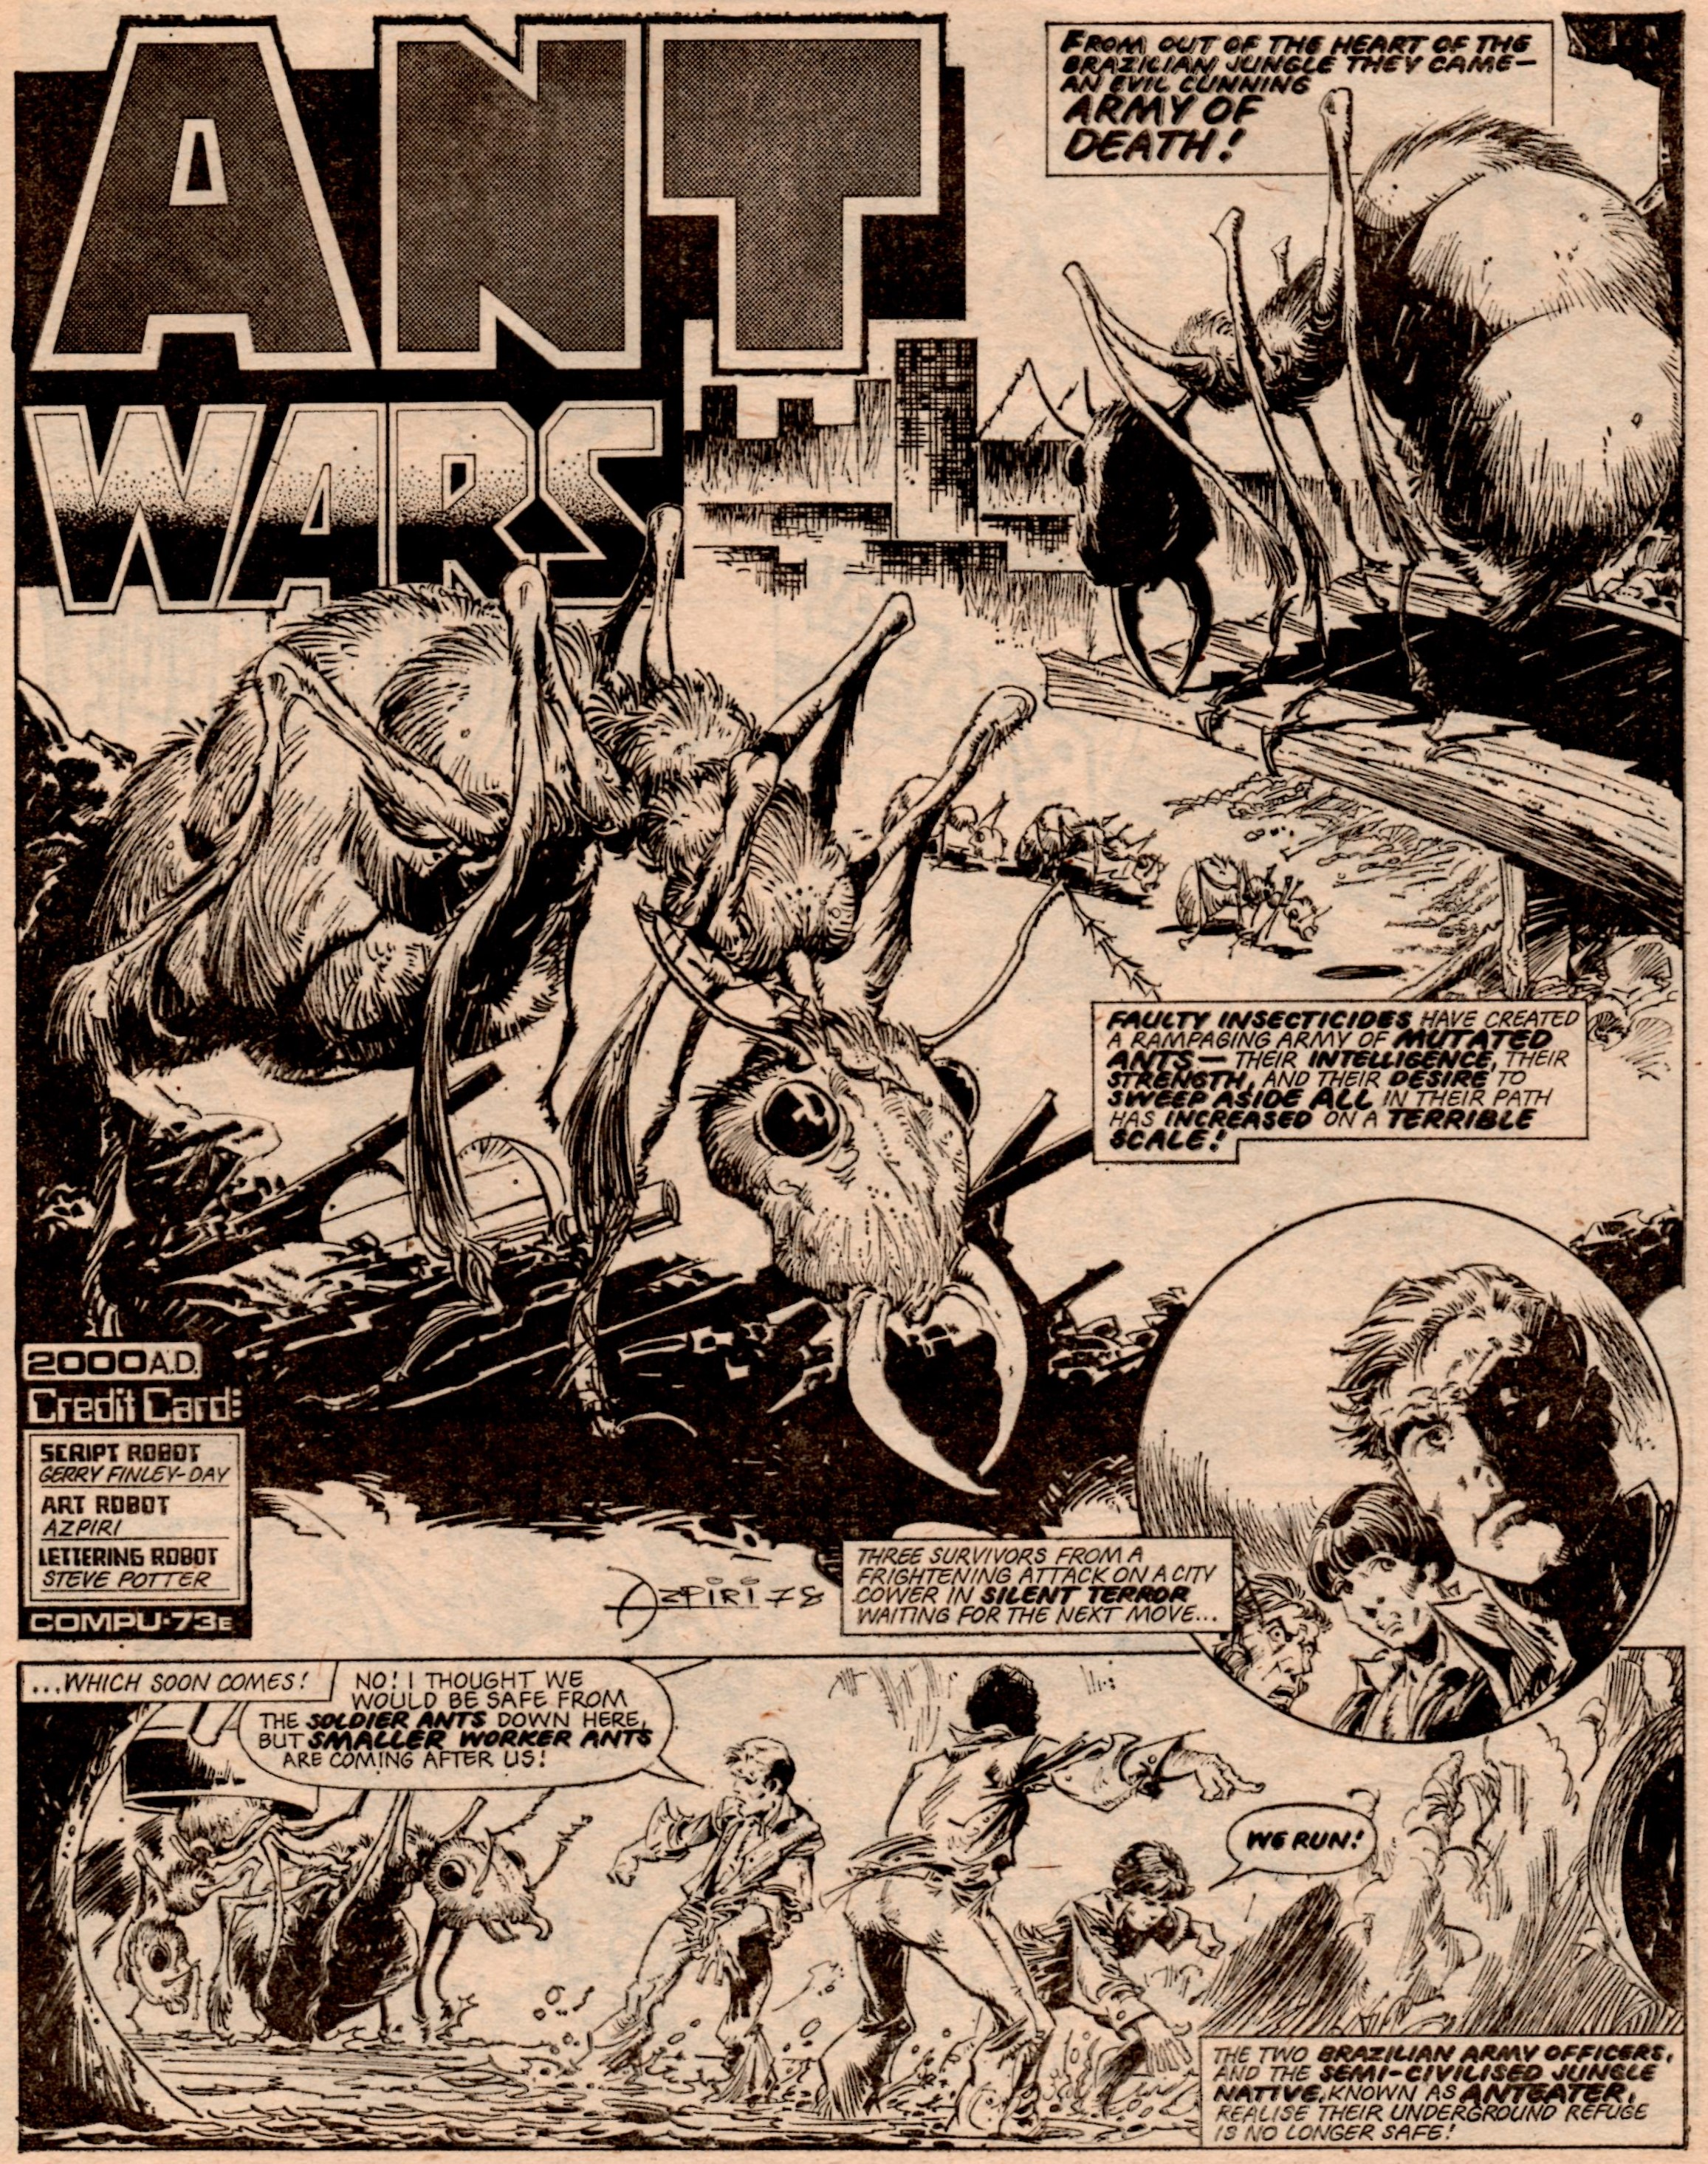 Ant Wars (2000AD, Prog 78, 19 August 1978): Gerry Finley-Day (writer), Azpiri (artist)